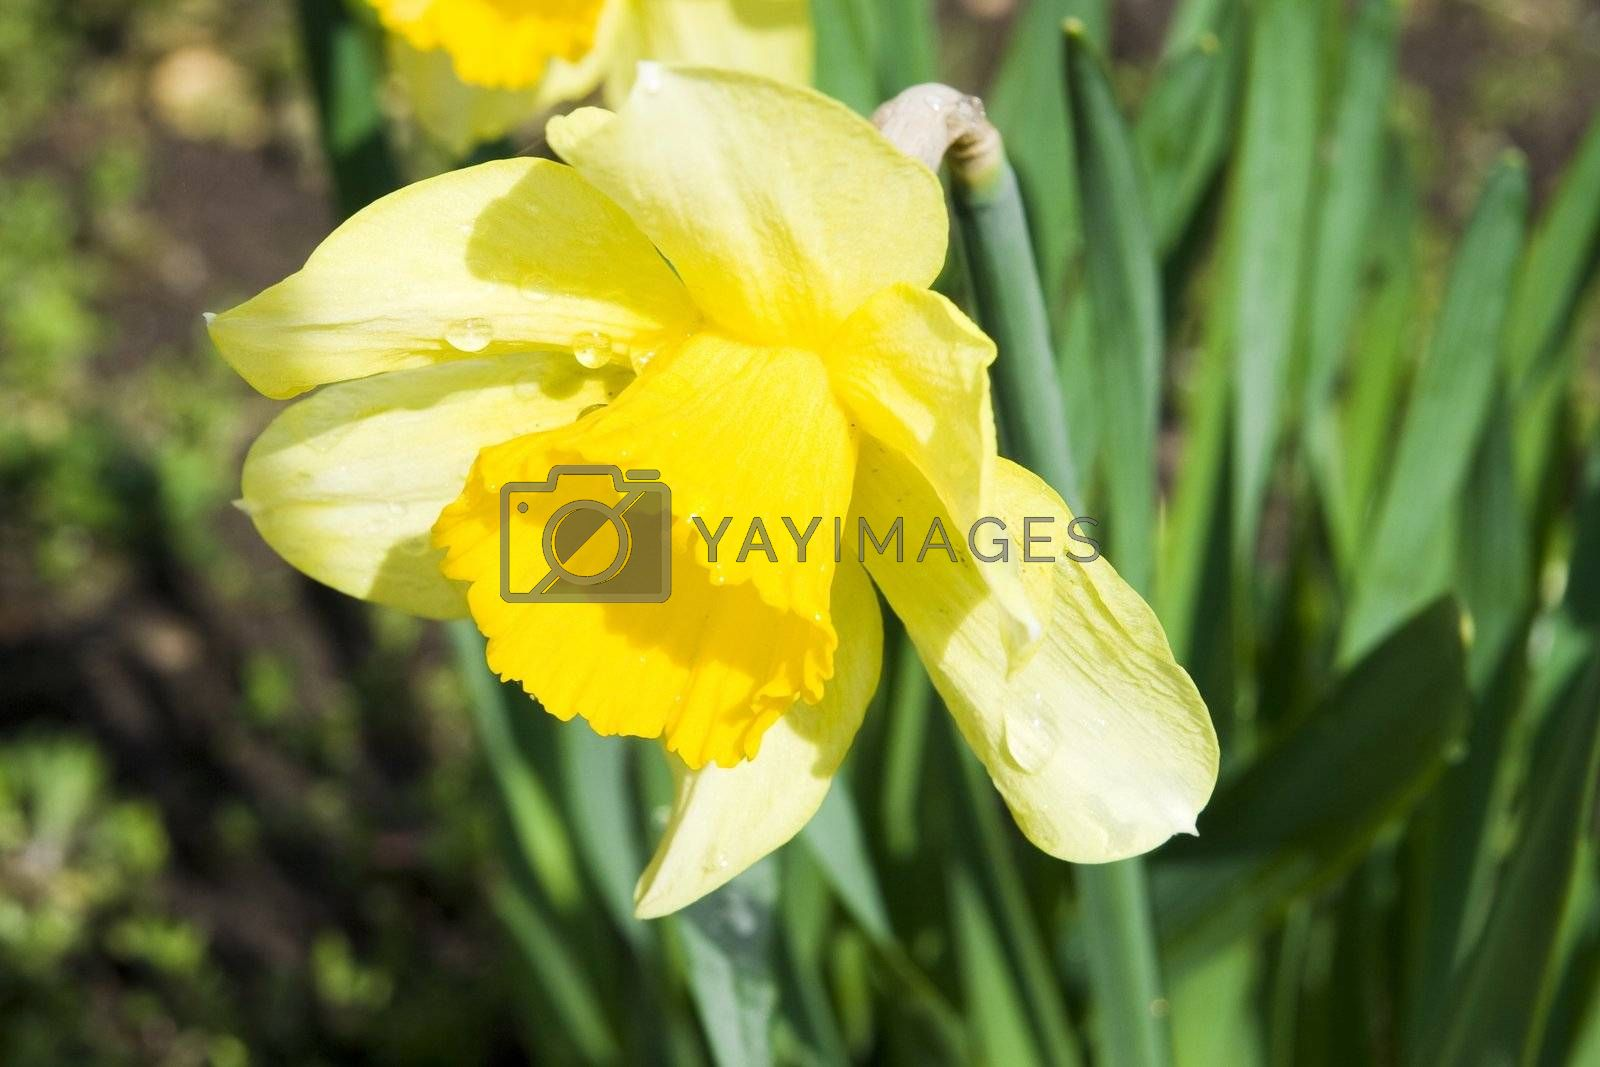 Very shallow depth-of-field image of the first flower of spring